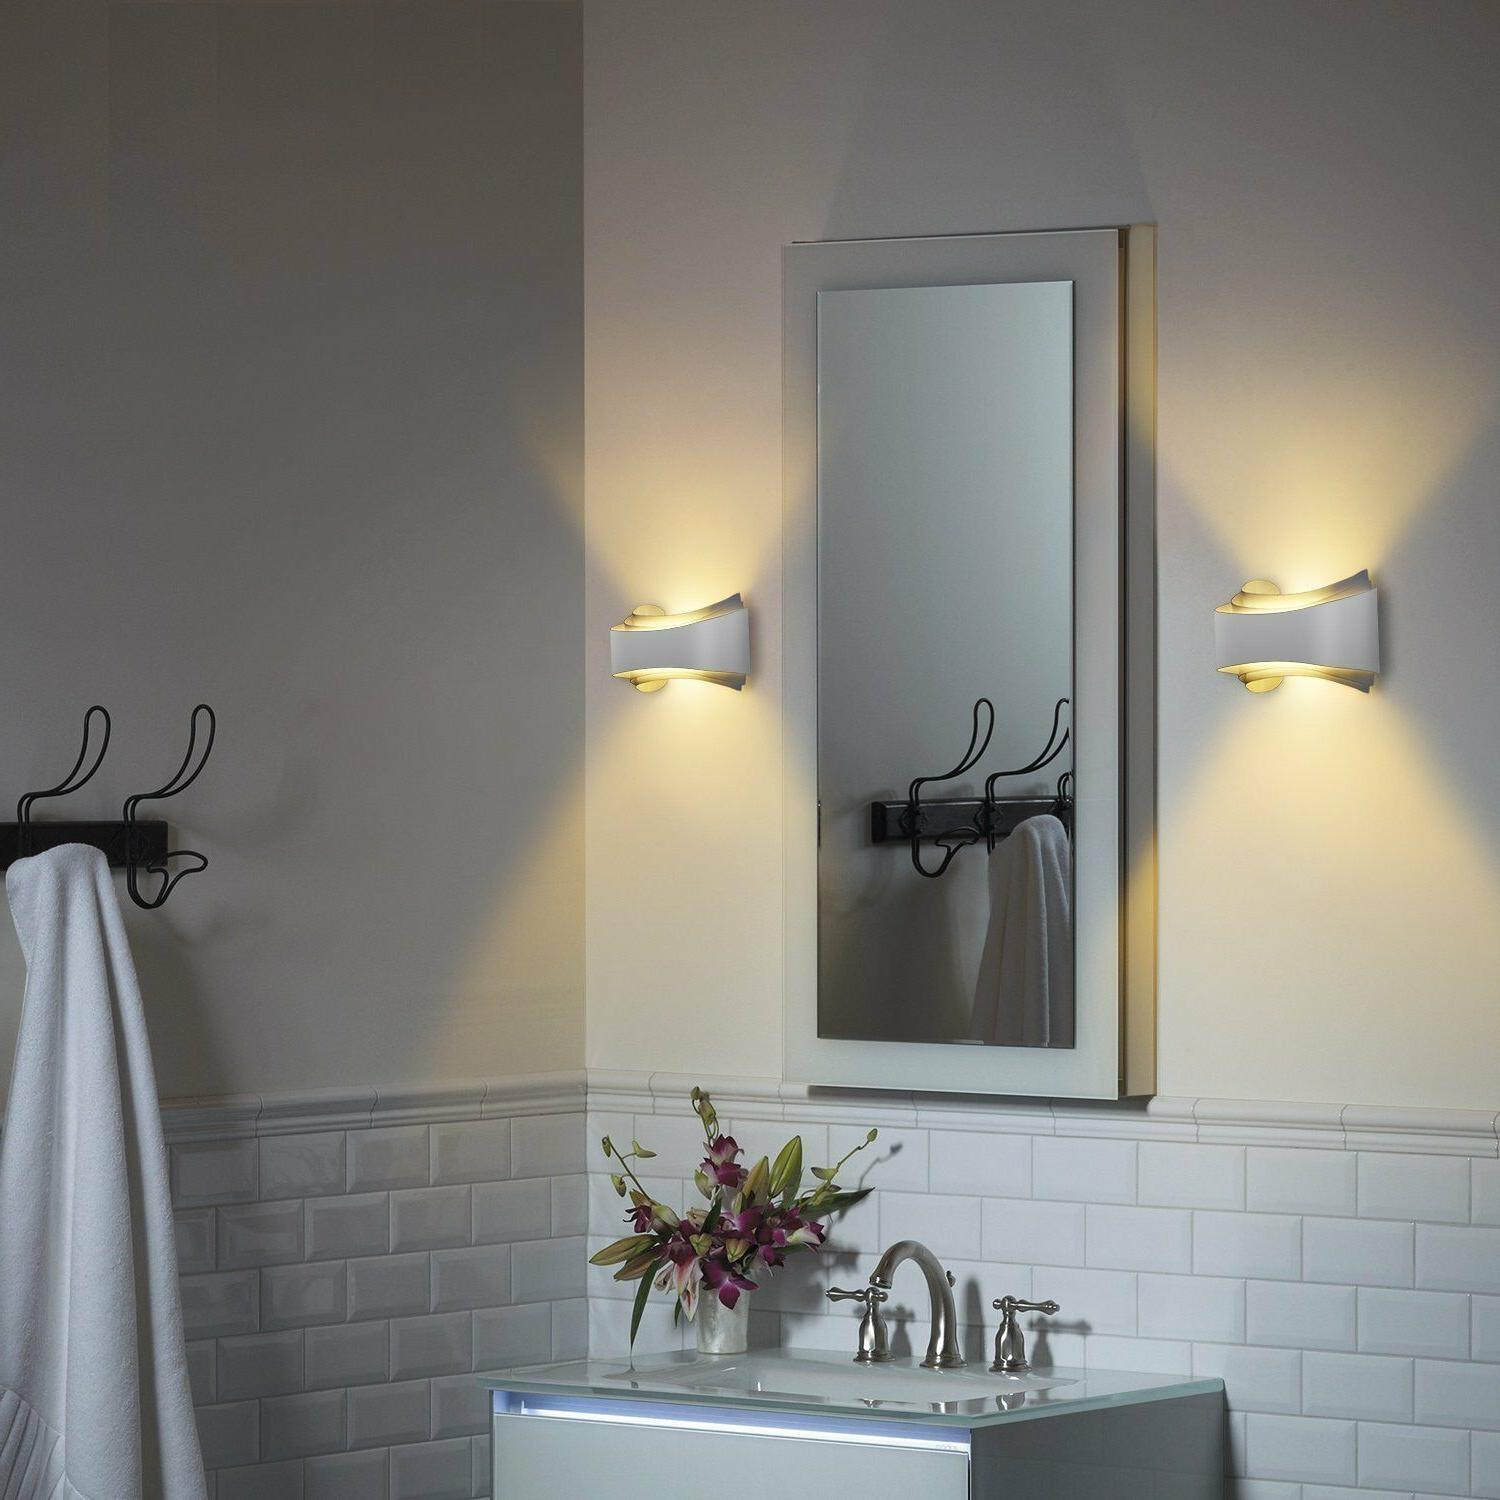 Albrillo Wall Sconce LED Wall Lights Lumen